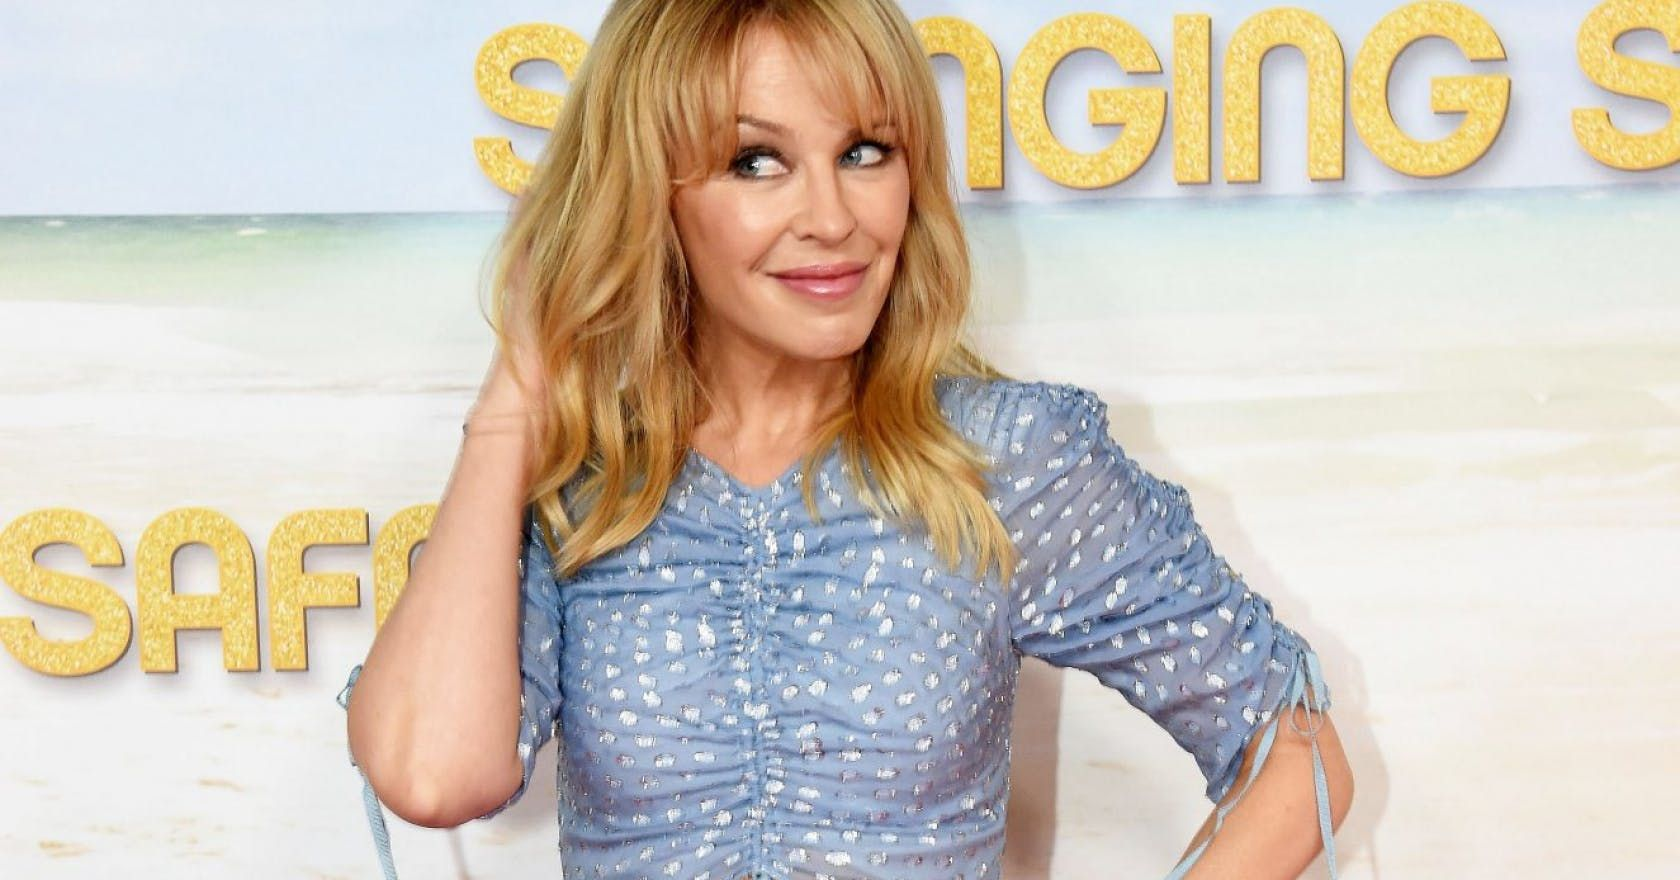 .@KylieMinogue brilliantly explains why she called off her wedding to Joshua Passe https://t.co/tdf1VvU7LK https://t.co/3D4uZVjBTf